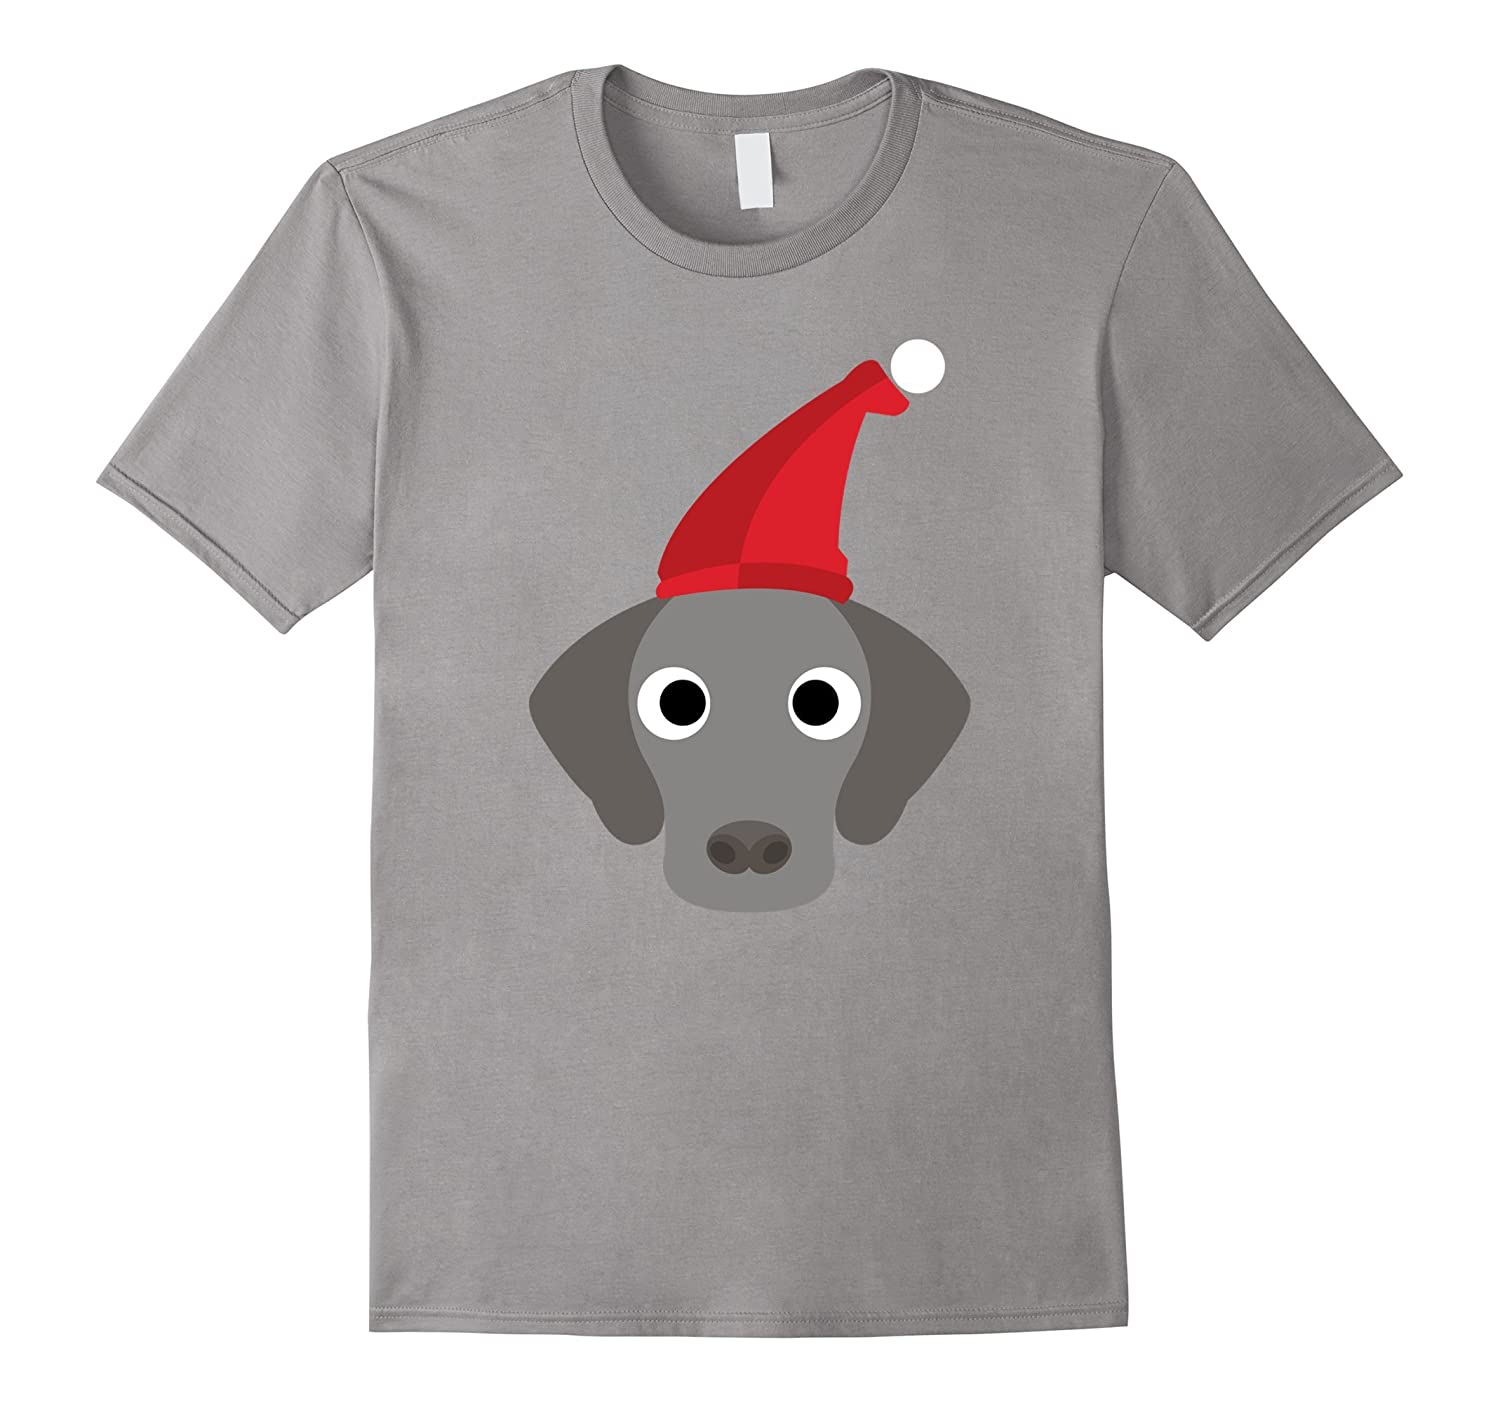 Weimaraner ugly christmas gifts dog lover t shirt-ANZ